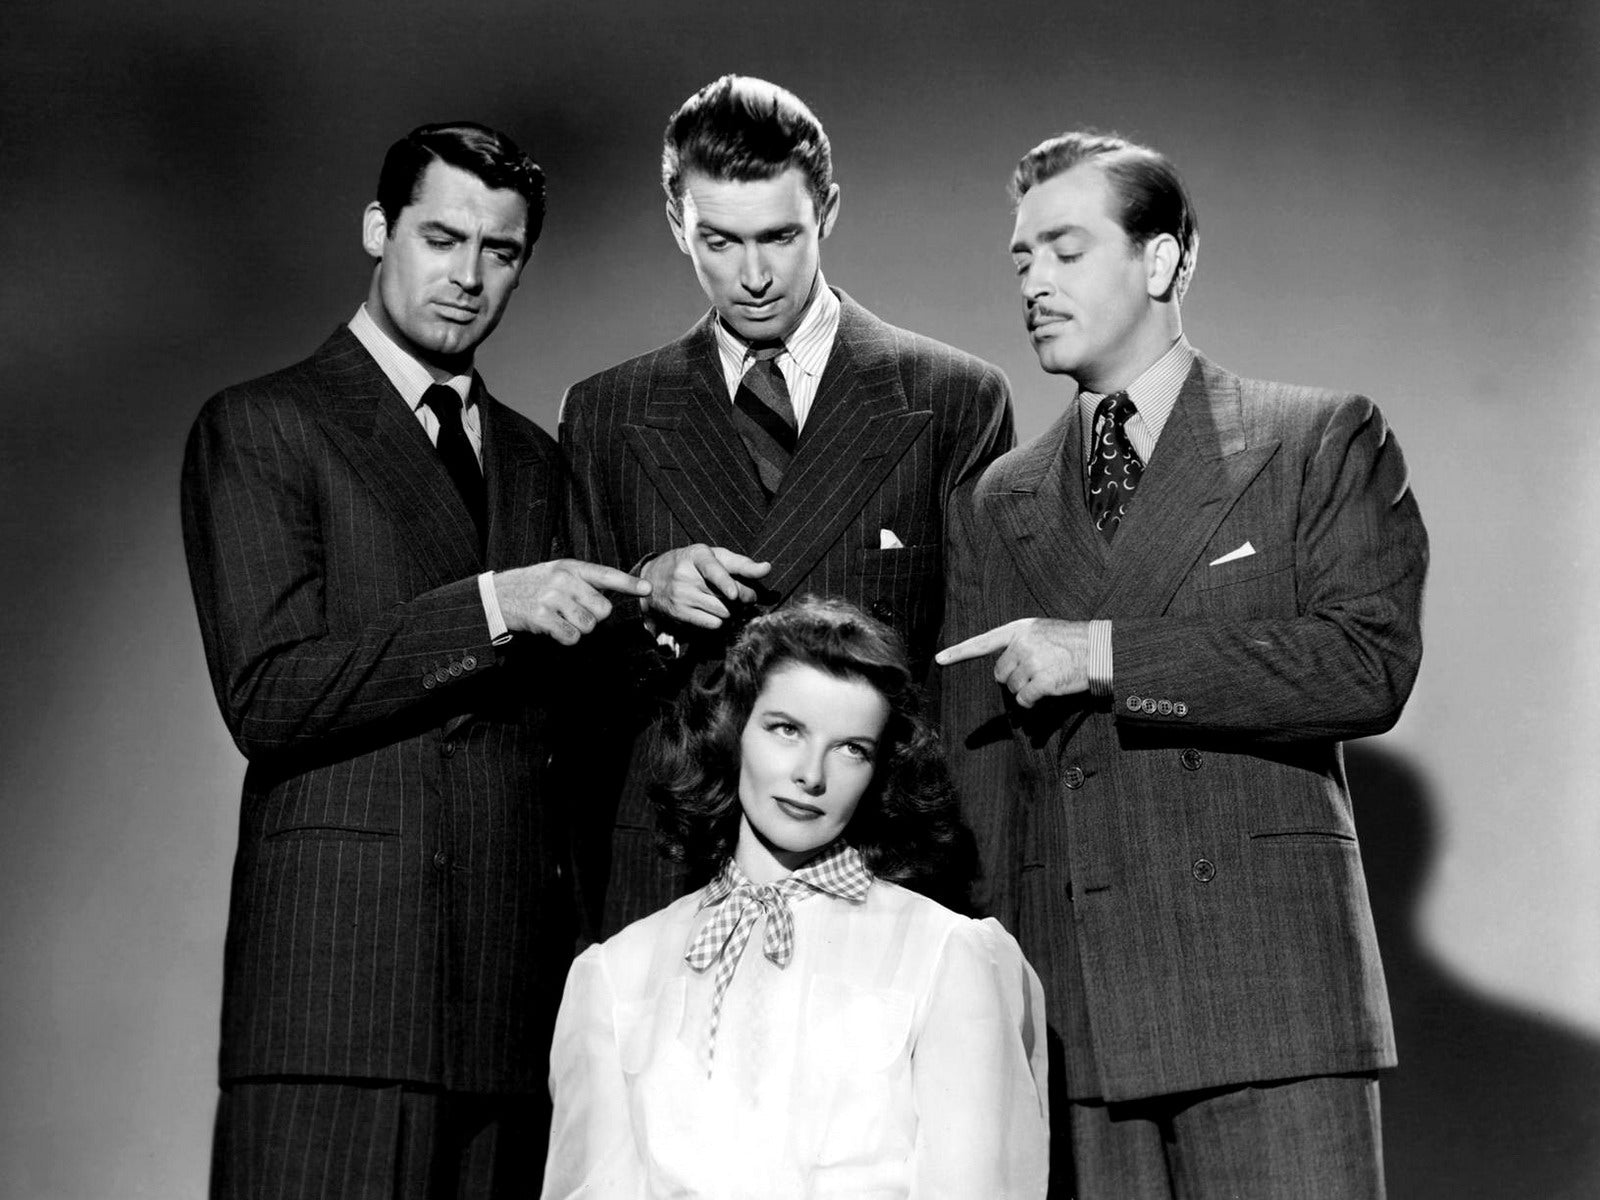 Pictured here from the movie The Philadelphia Story is Cary Grant and James Stewart in Double Breasted Pinstripe Suits along side John Howard with Katherine Hepburn in the centre. Photo Credit: The Fashionisto